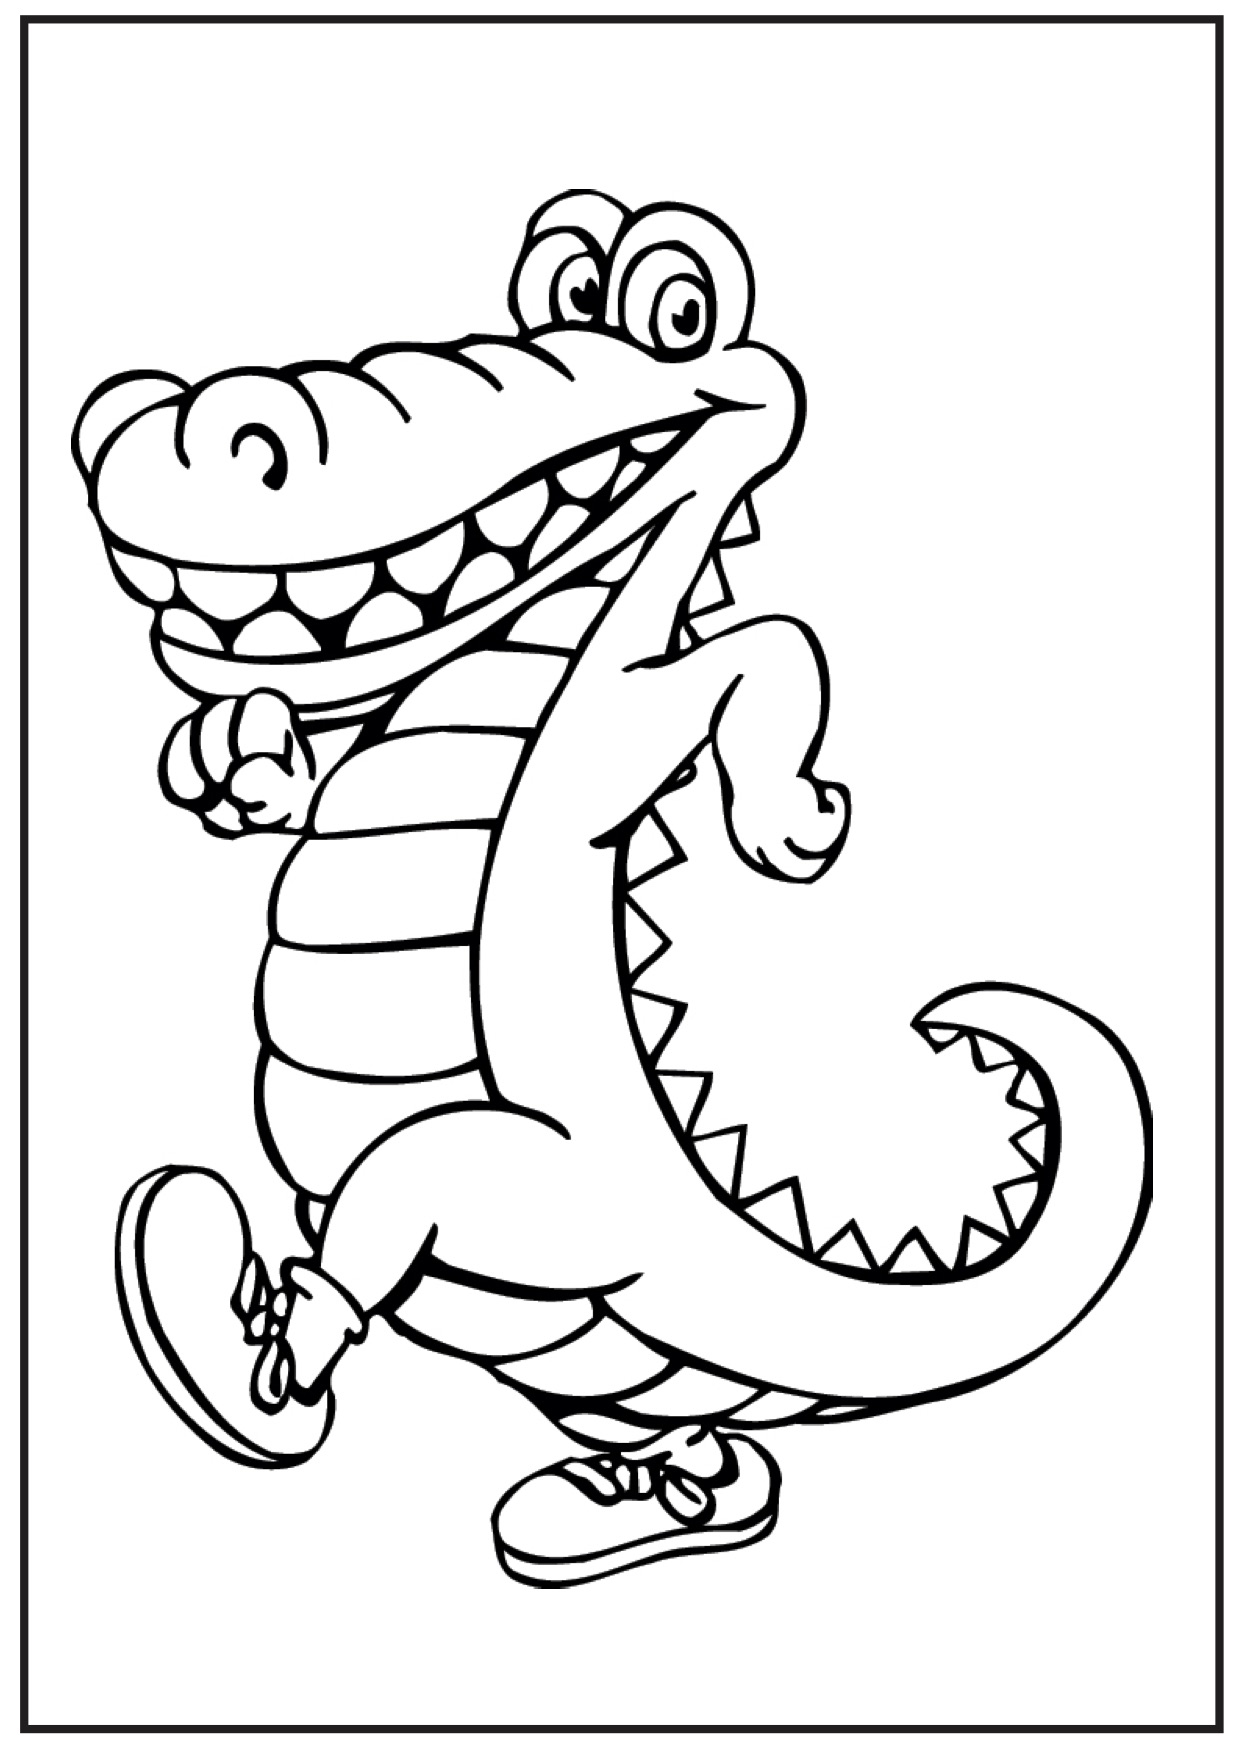 free printable pictures of alligators get this free printable alligator coloring pages for kids pictures alligators printable of free